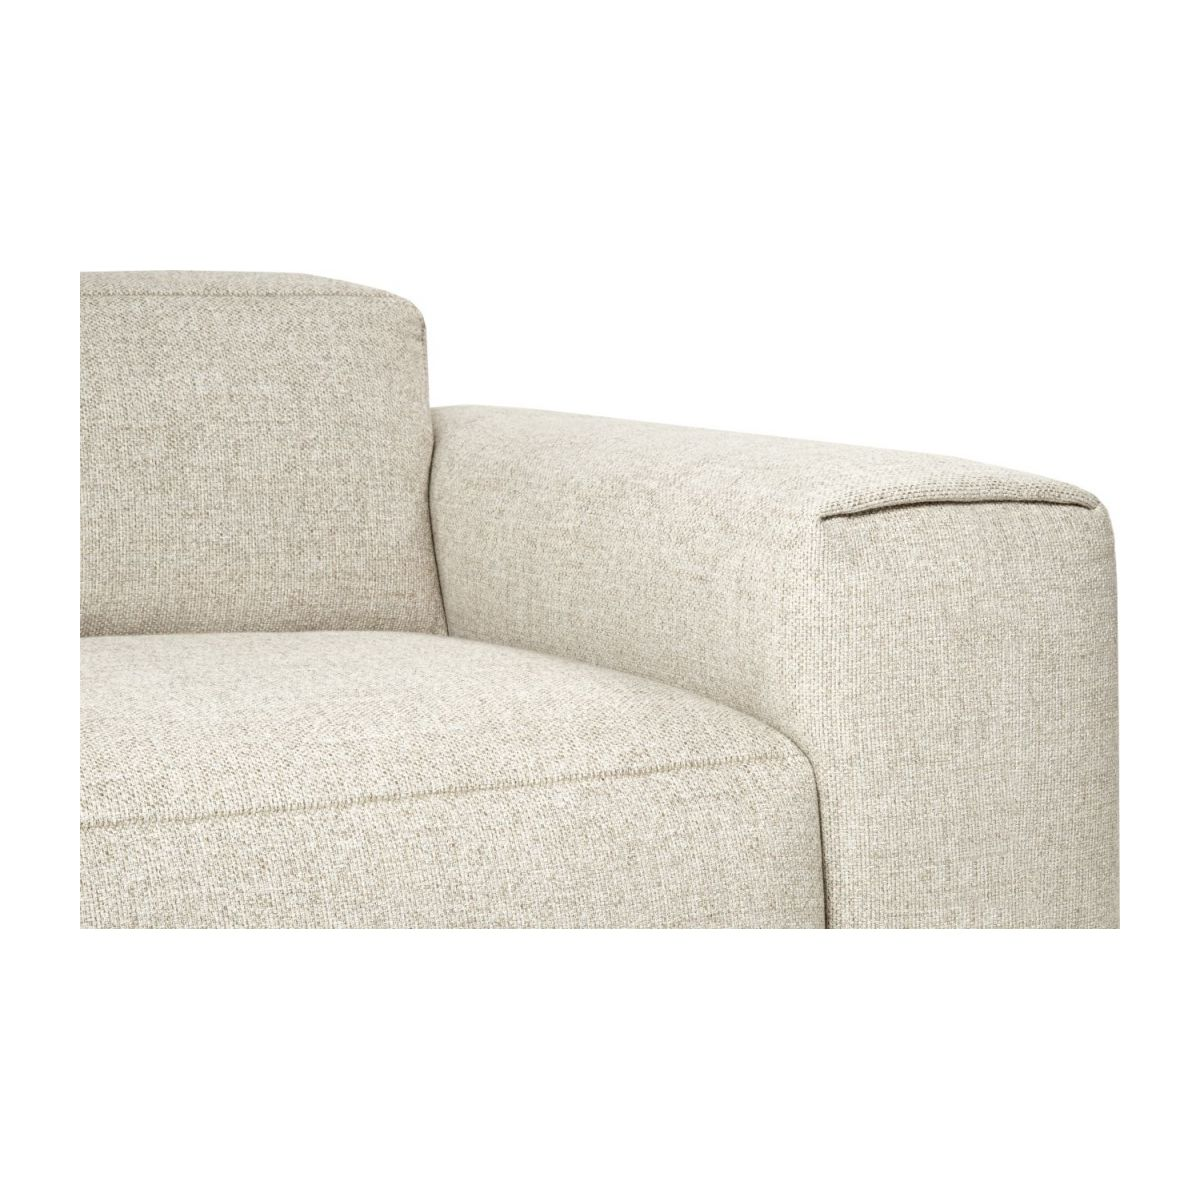 3 seater sofa in Lecce fabric, nature n°6